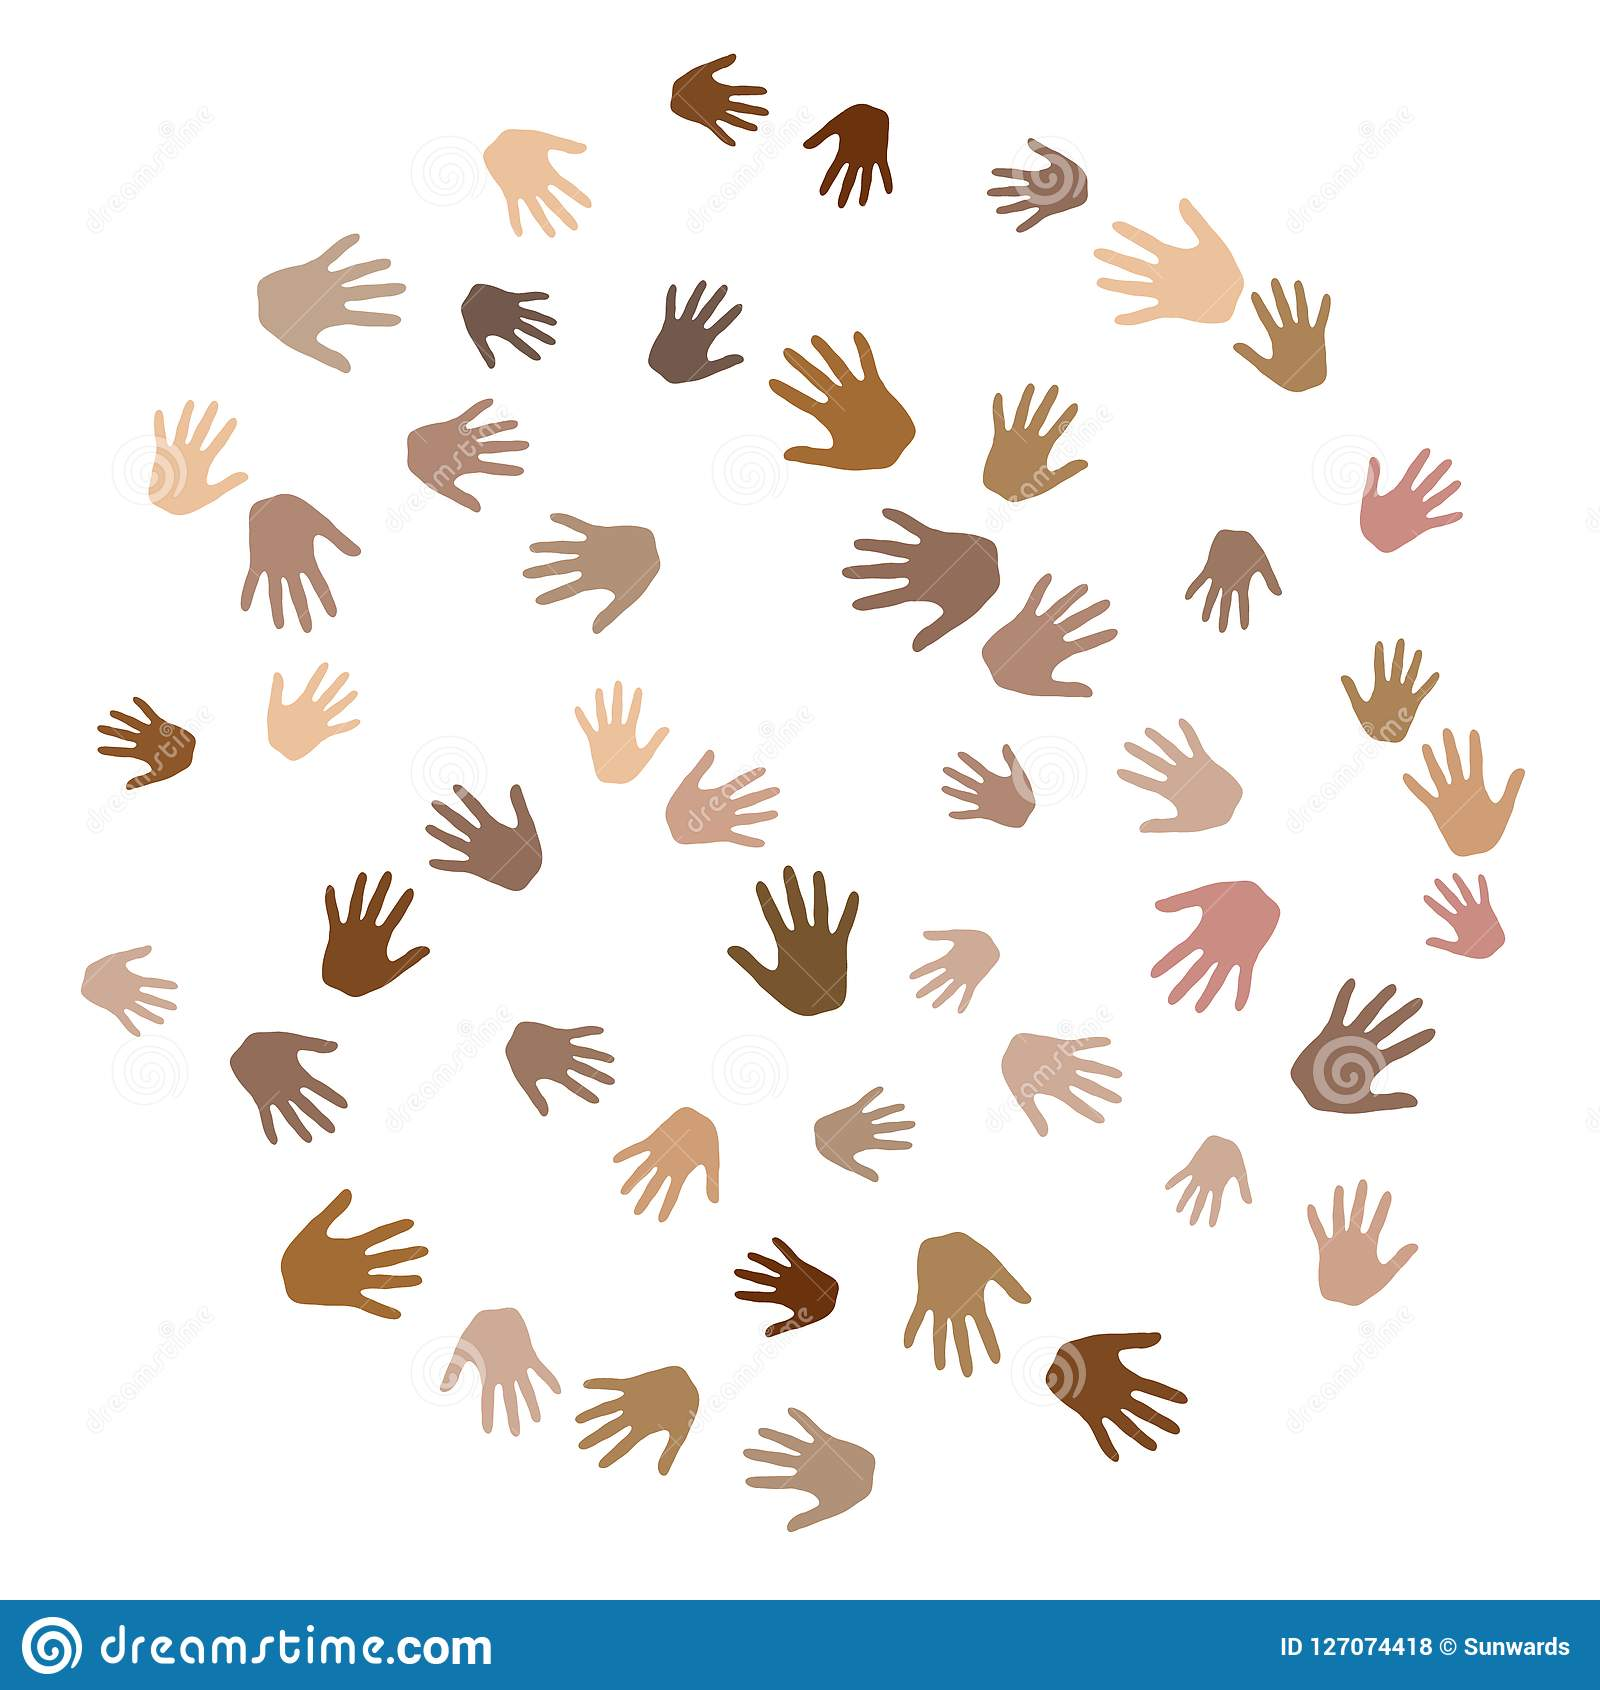 Hands with skin color diversity vector background. Solidarity concept icons, social, national, racial issues symbols.